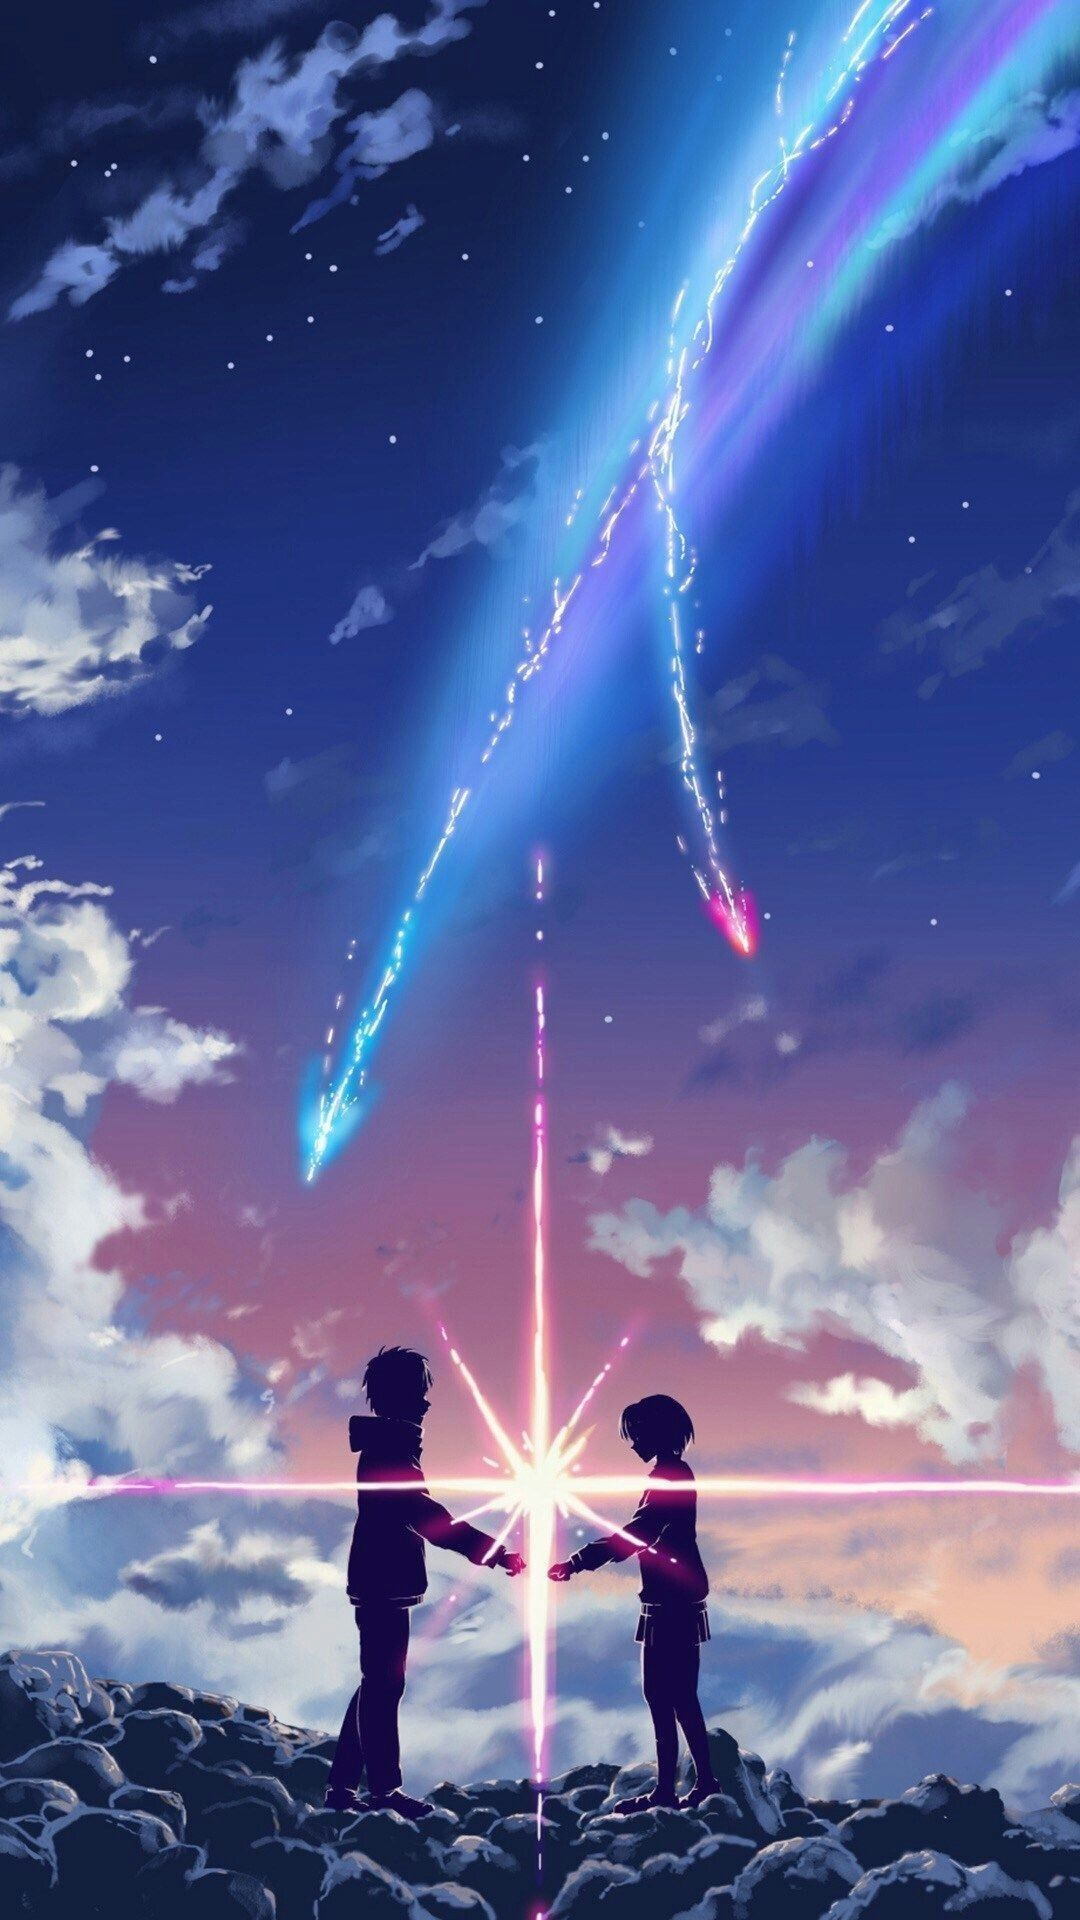 4 anime wallpaper aesthetic wallpaper iphone